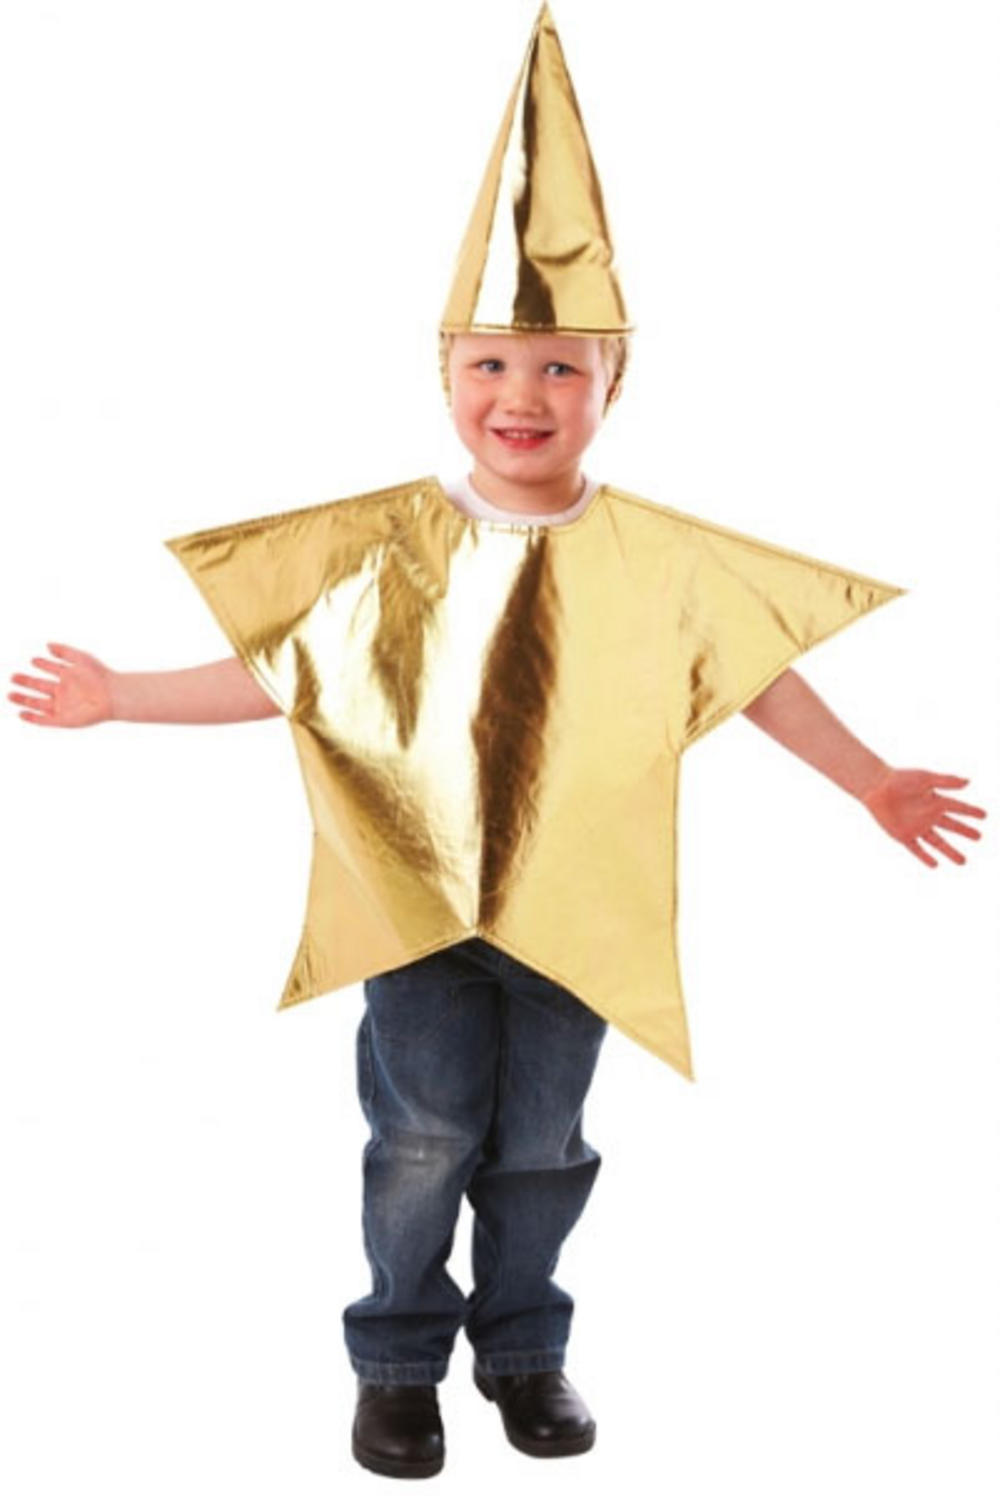 Kids Star Costume  sc 1 st  Mega Fancy Dress & Kids Star Costume | Kids Christmas Costumes | Mega Fancy Dress